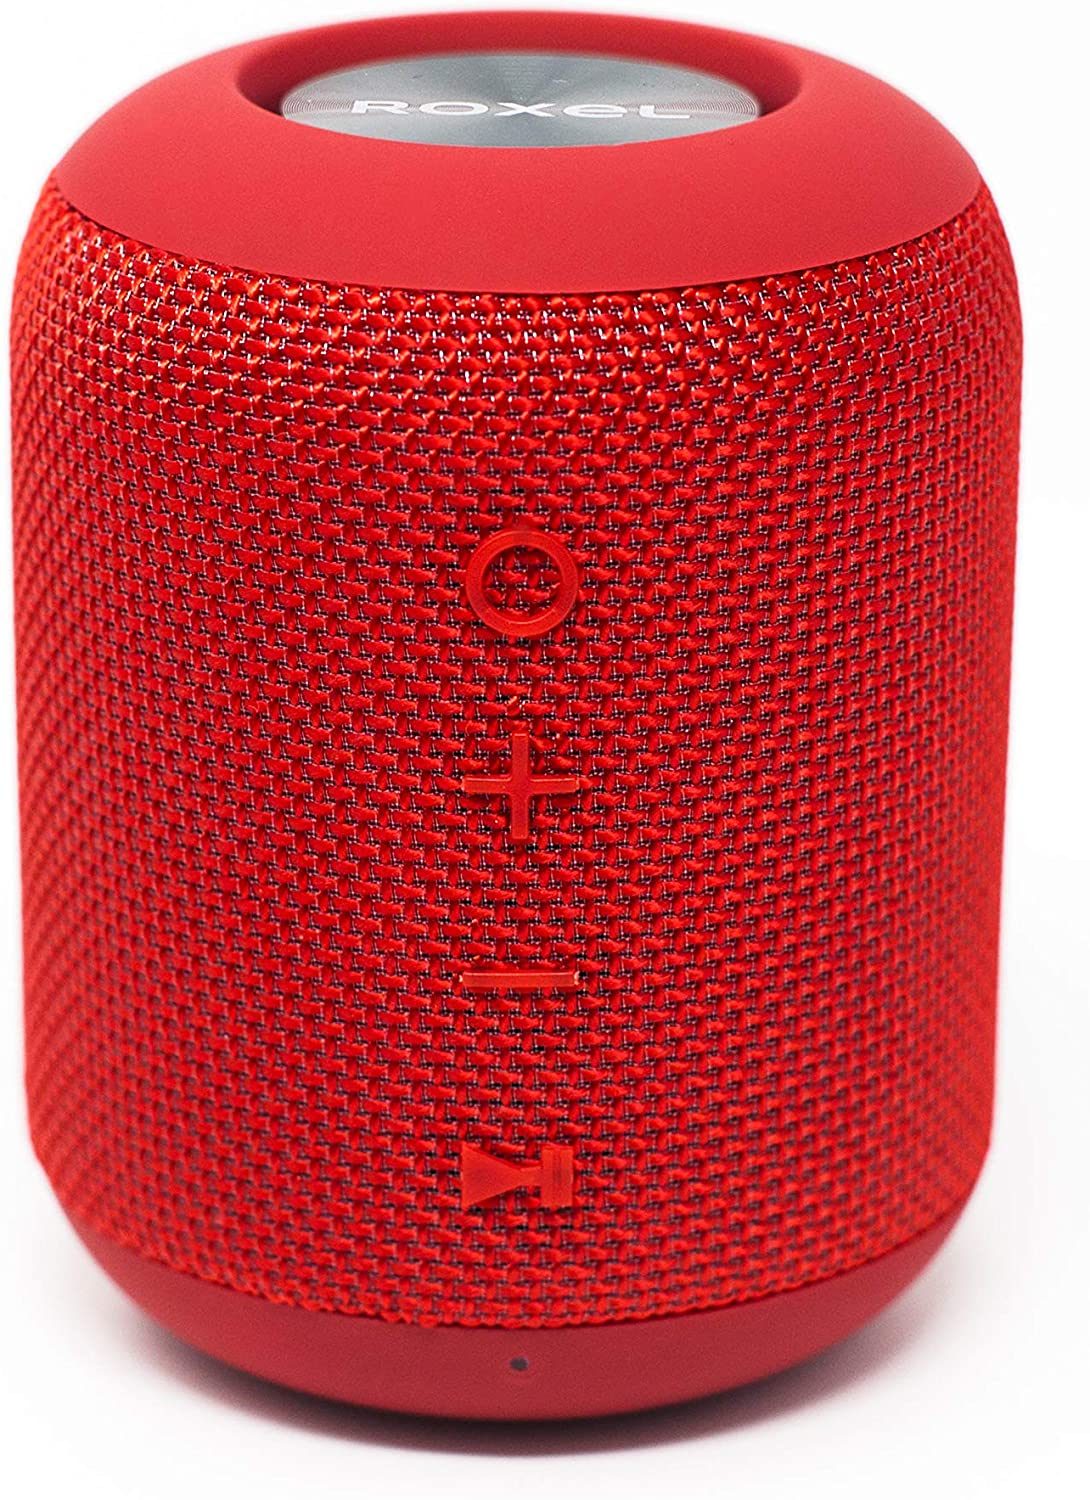 Roxel RXB-360BT Bluetooth Wireless Portable Travel Speaker with Extra Bass - smrt-life.com